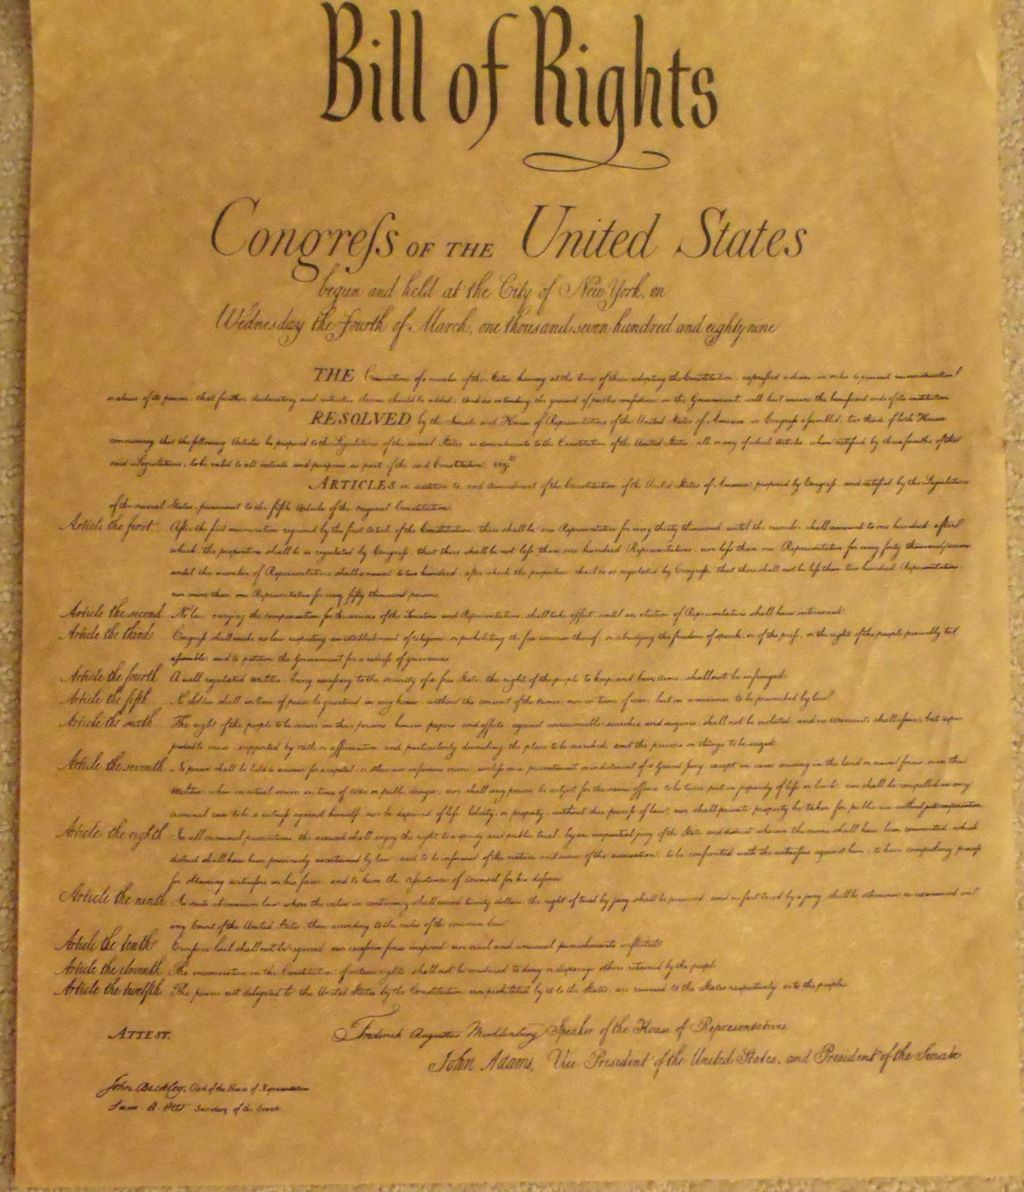 Religious Freedom, Our Founding Fathers and Marriage Equality